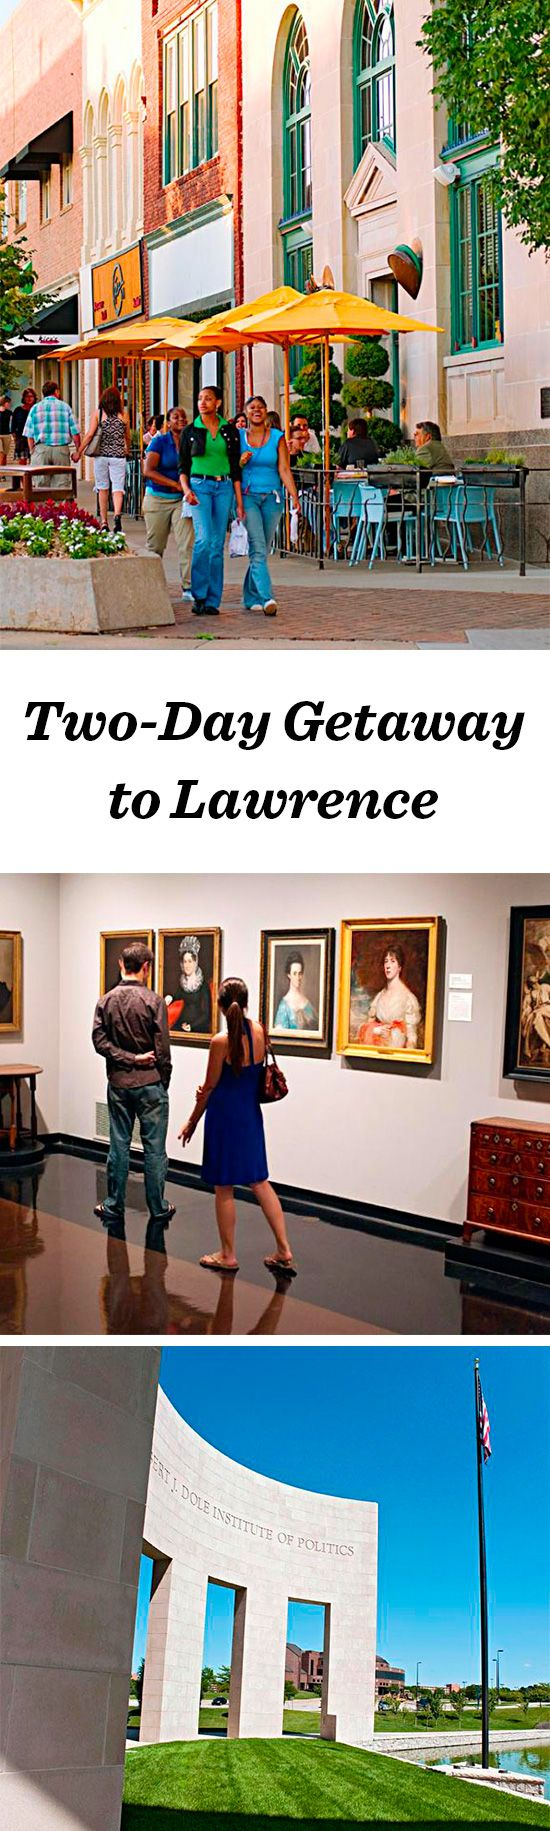 Home of the University of Kansas, this hip city promises a great shopping and dining scene: http://www.midwestliving.com/travel/kansas/lawrence/two-day-getaway-to-lawrence/ #kansas #midwest #travel